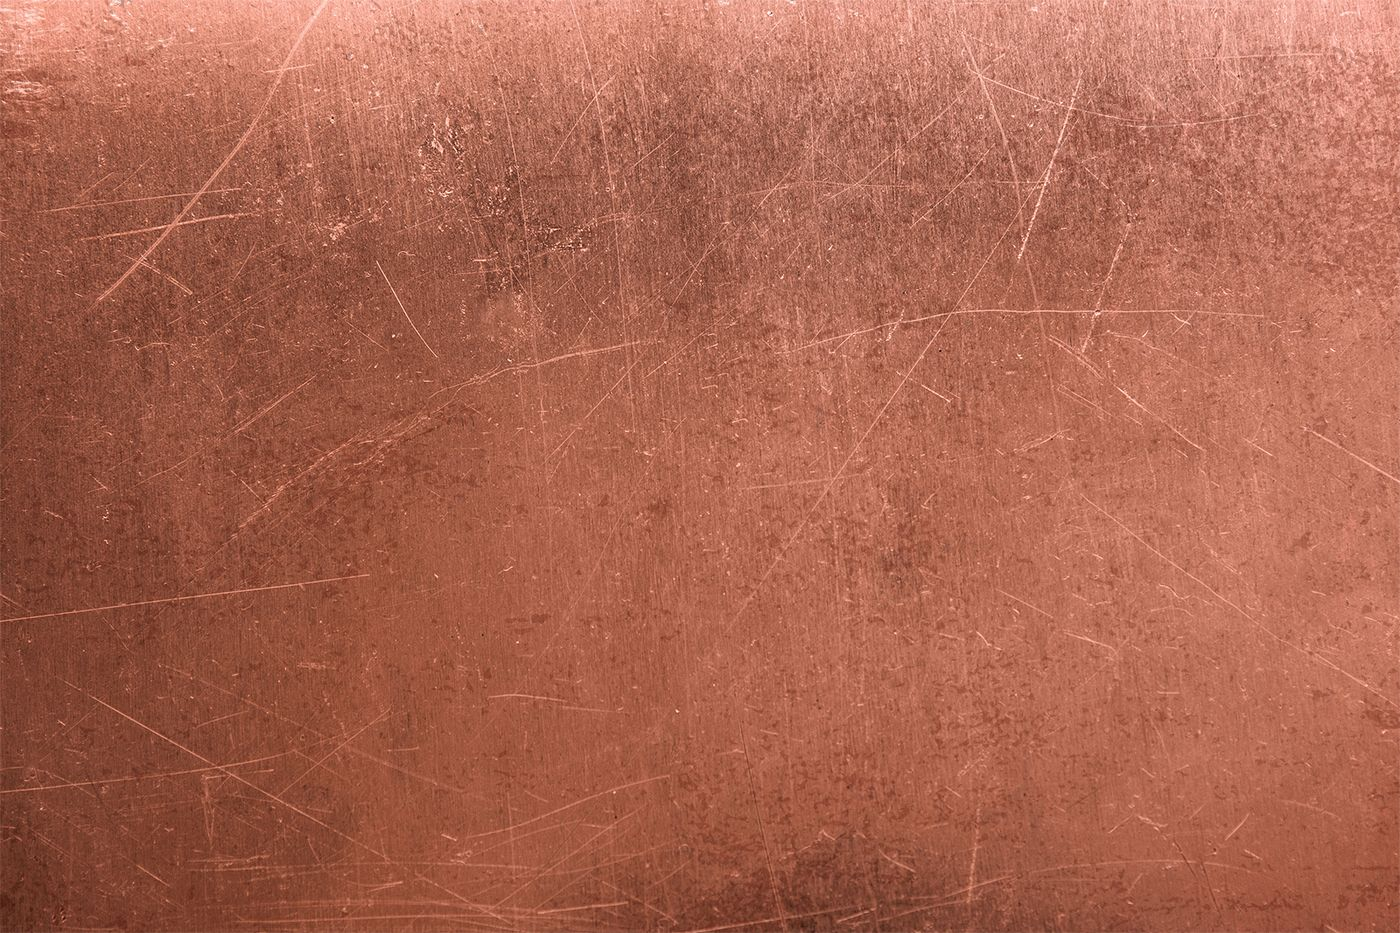 Copper Effect Wallpaper Distressed Style